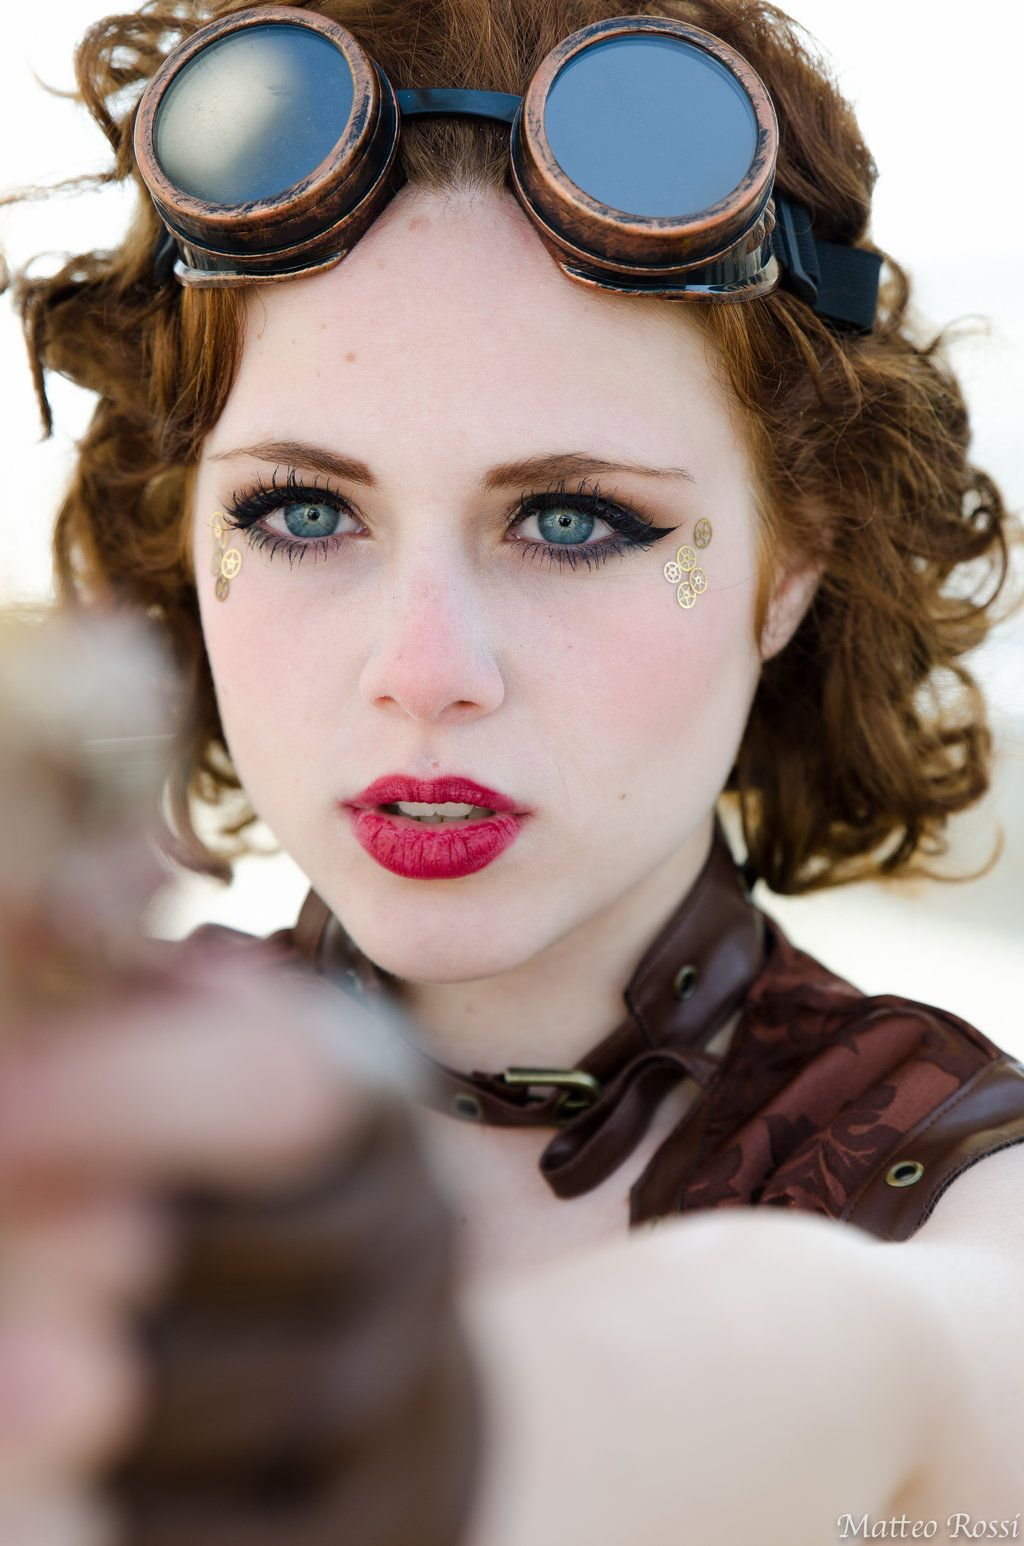 24 Most Refined And Visually Stimulating Steampunk Women